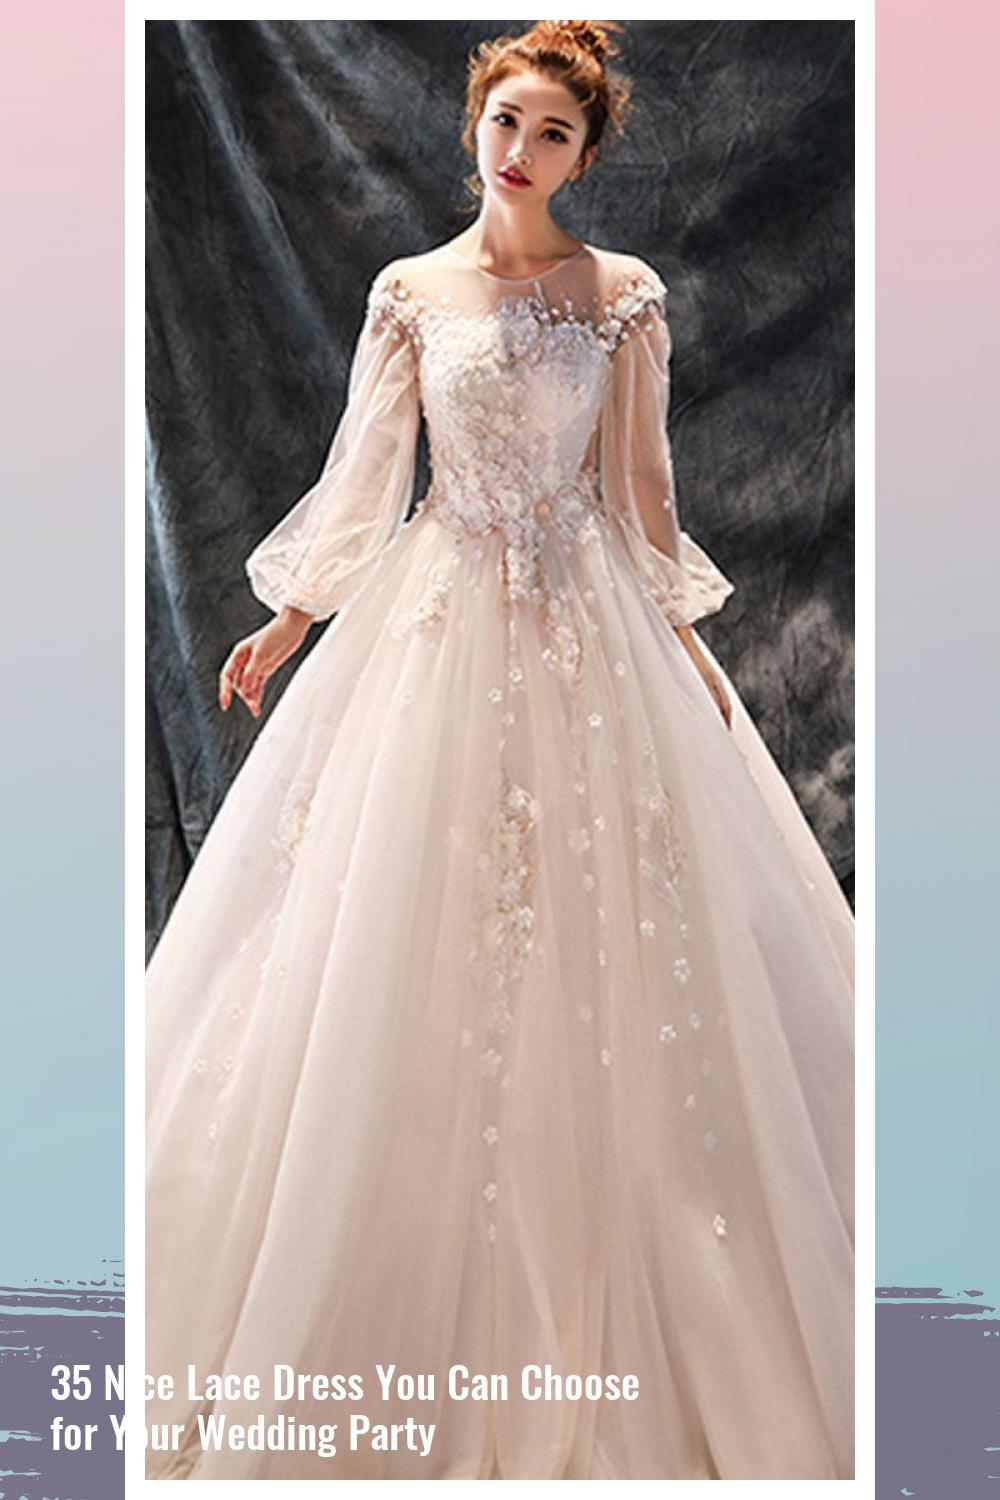 35 Nice Lace Dress You Can Choose for Your Wedding Party 10